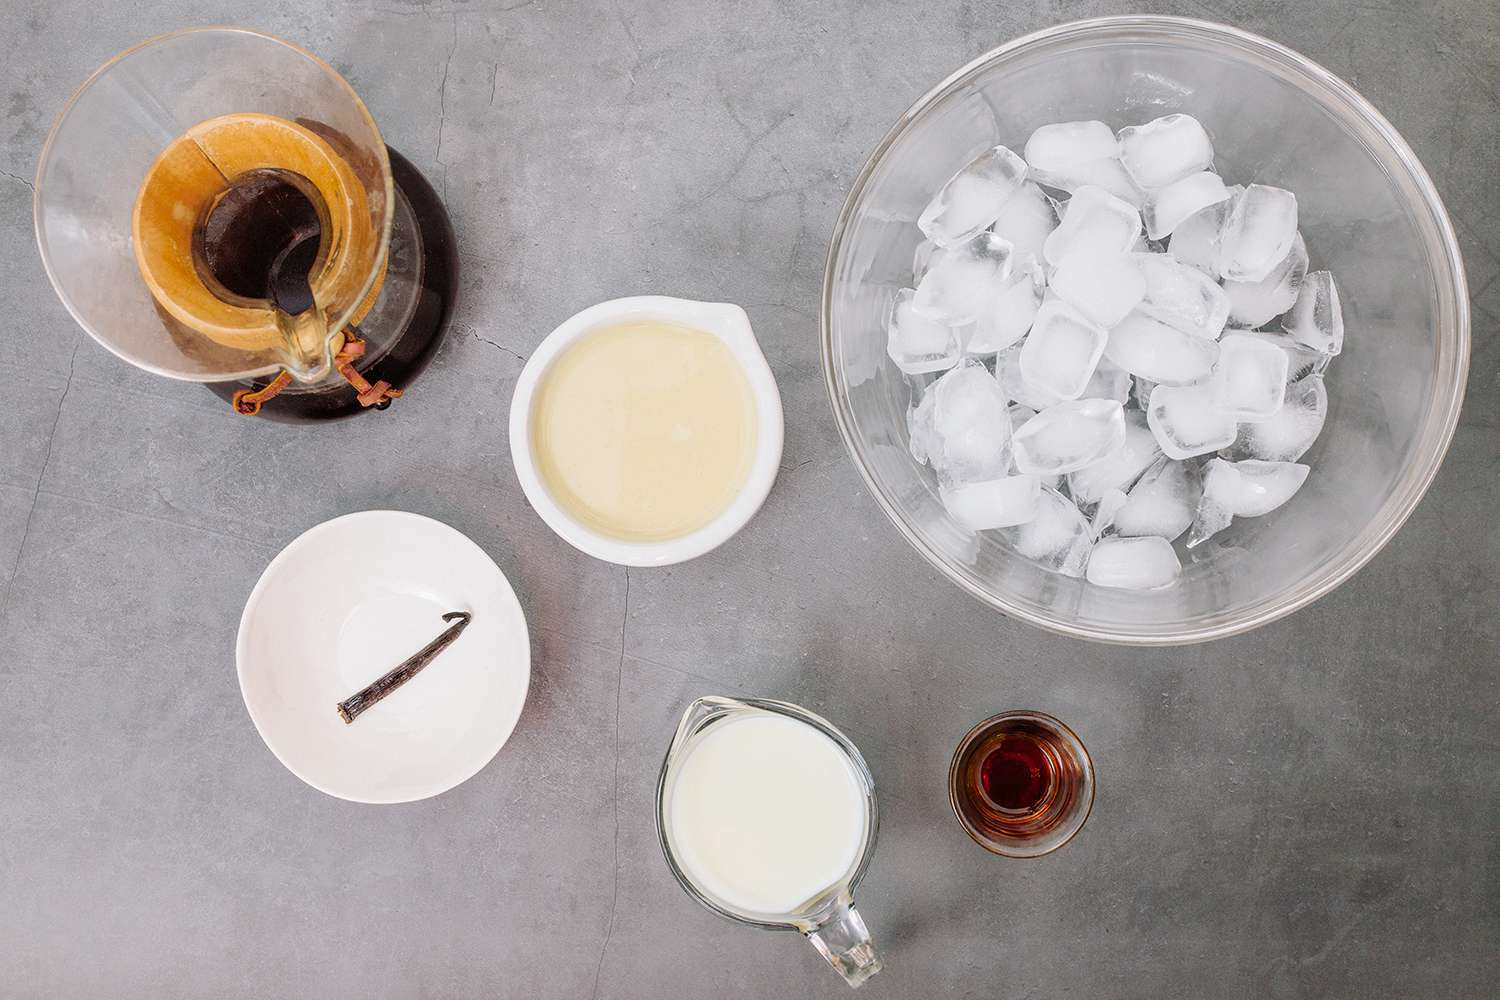 Homemade Frappuccino ingredients